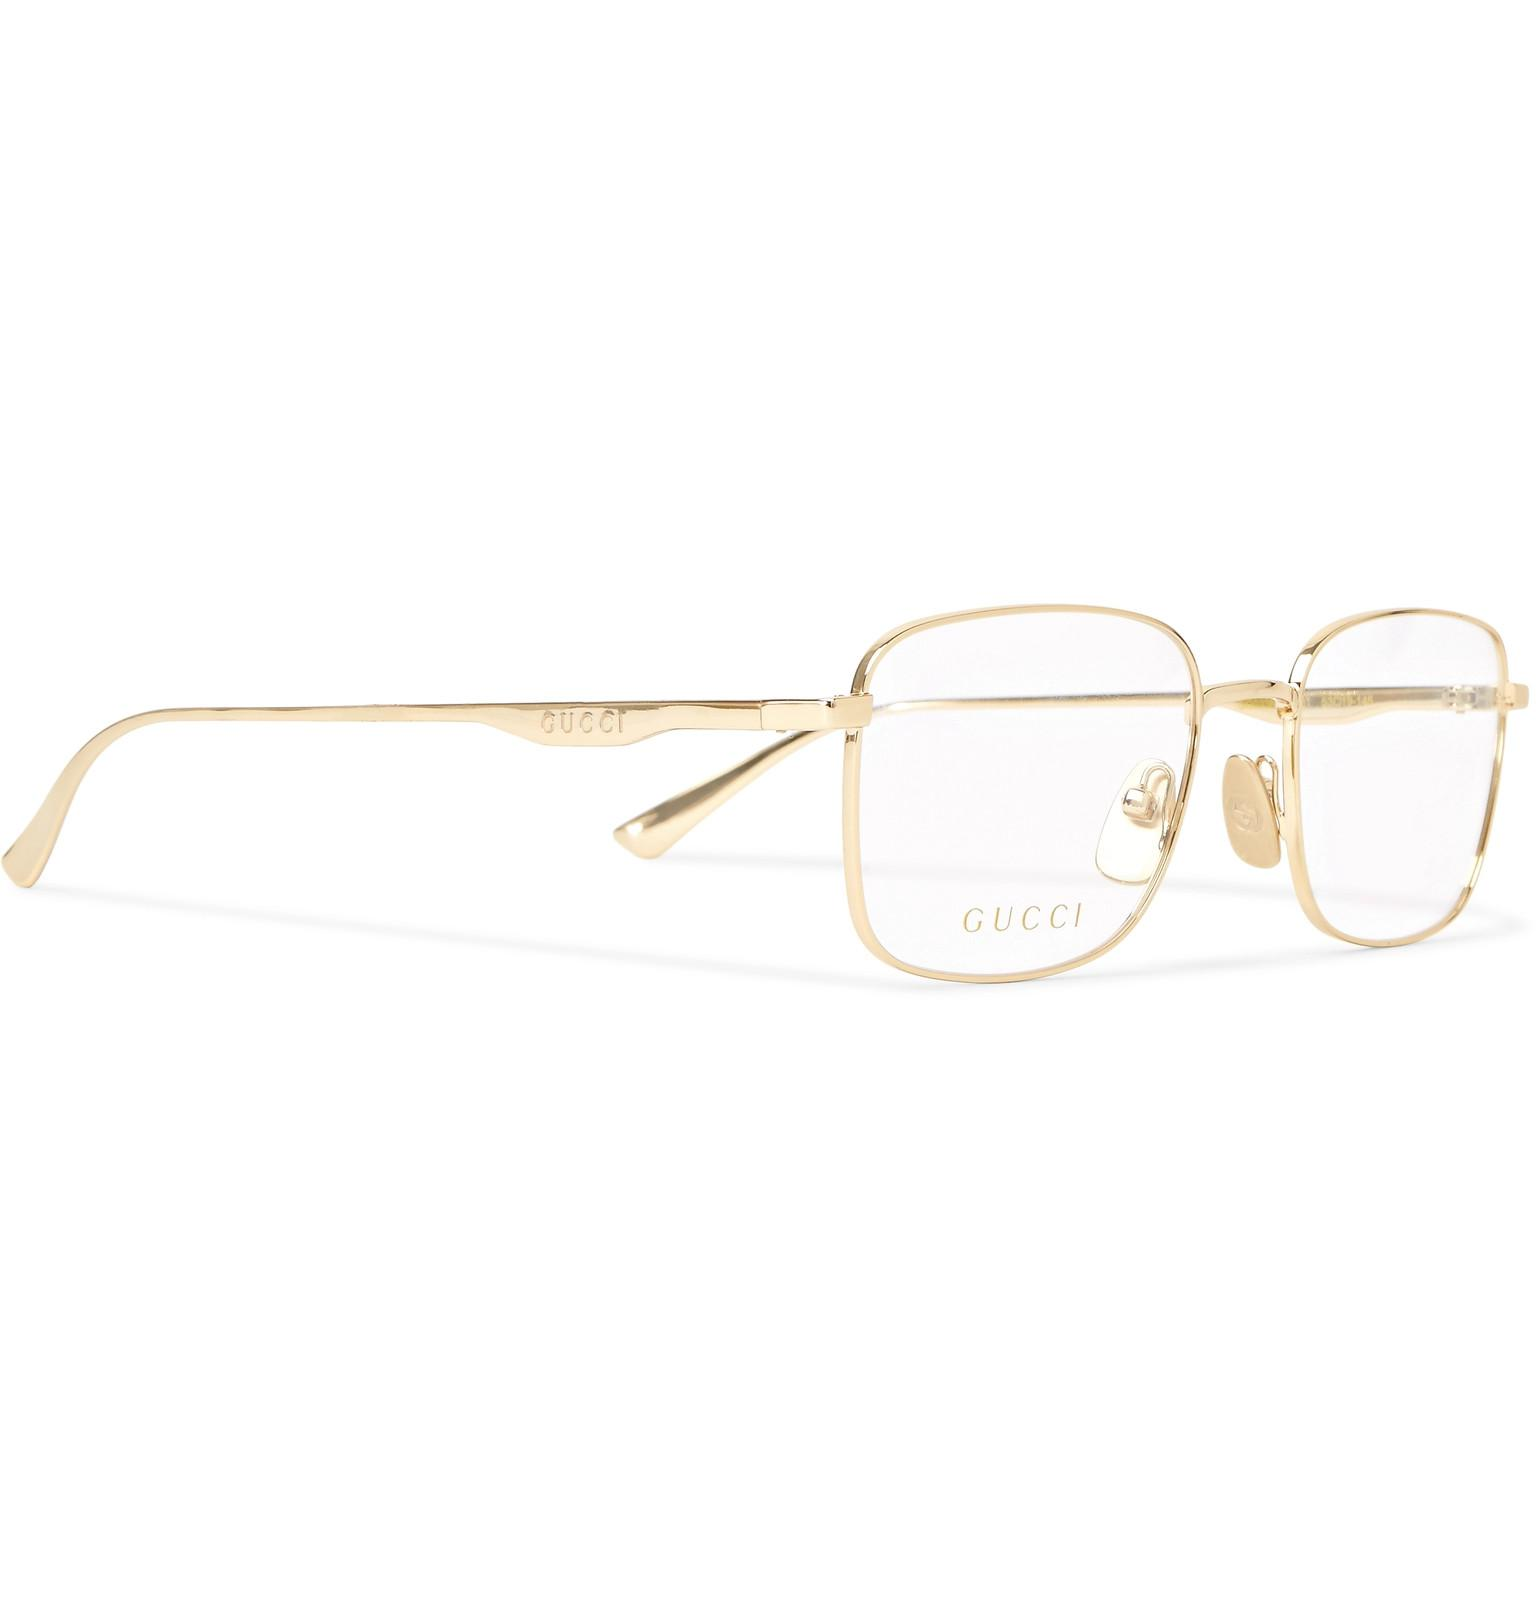 c52ed9896ba Gucci Square-frame Gold-tone Optical Glasses in Metallic for Men - Lyst